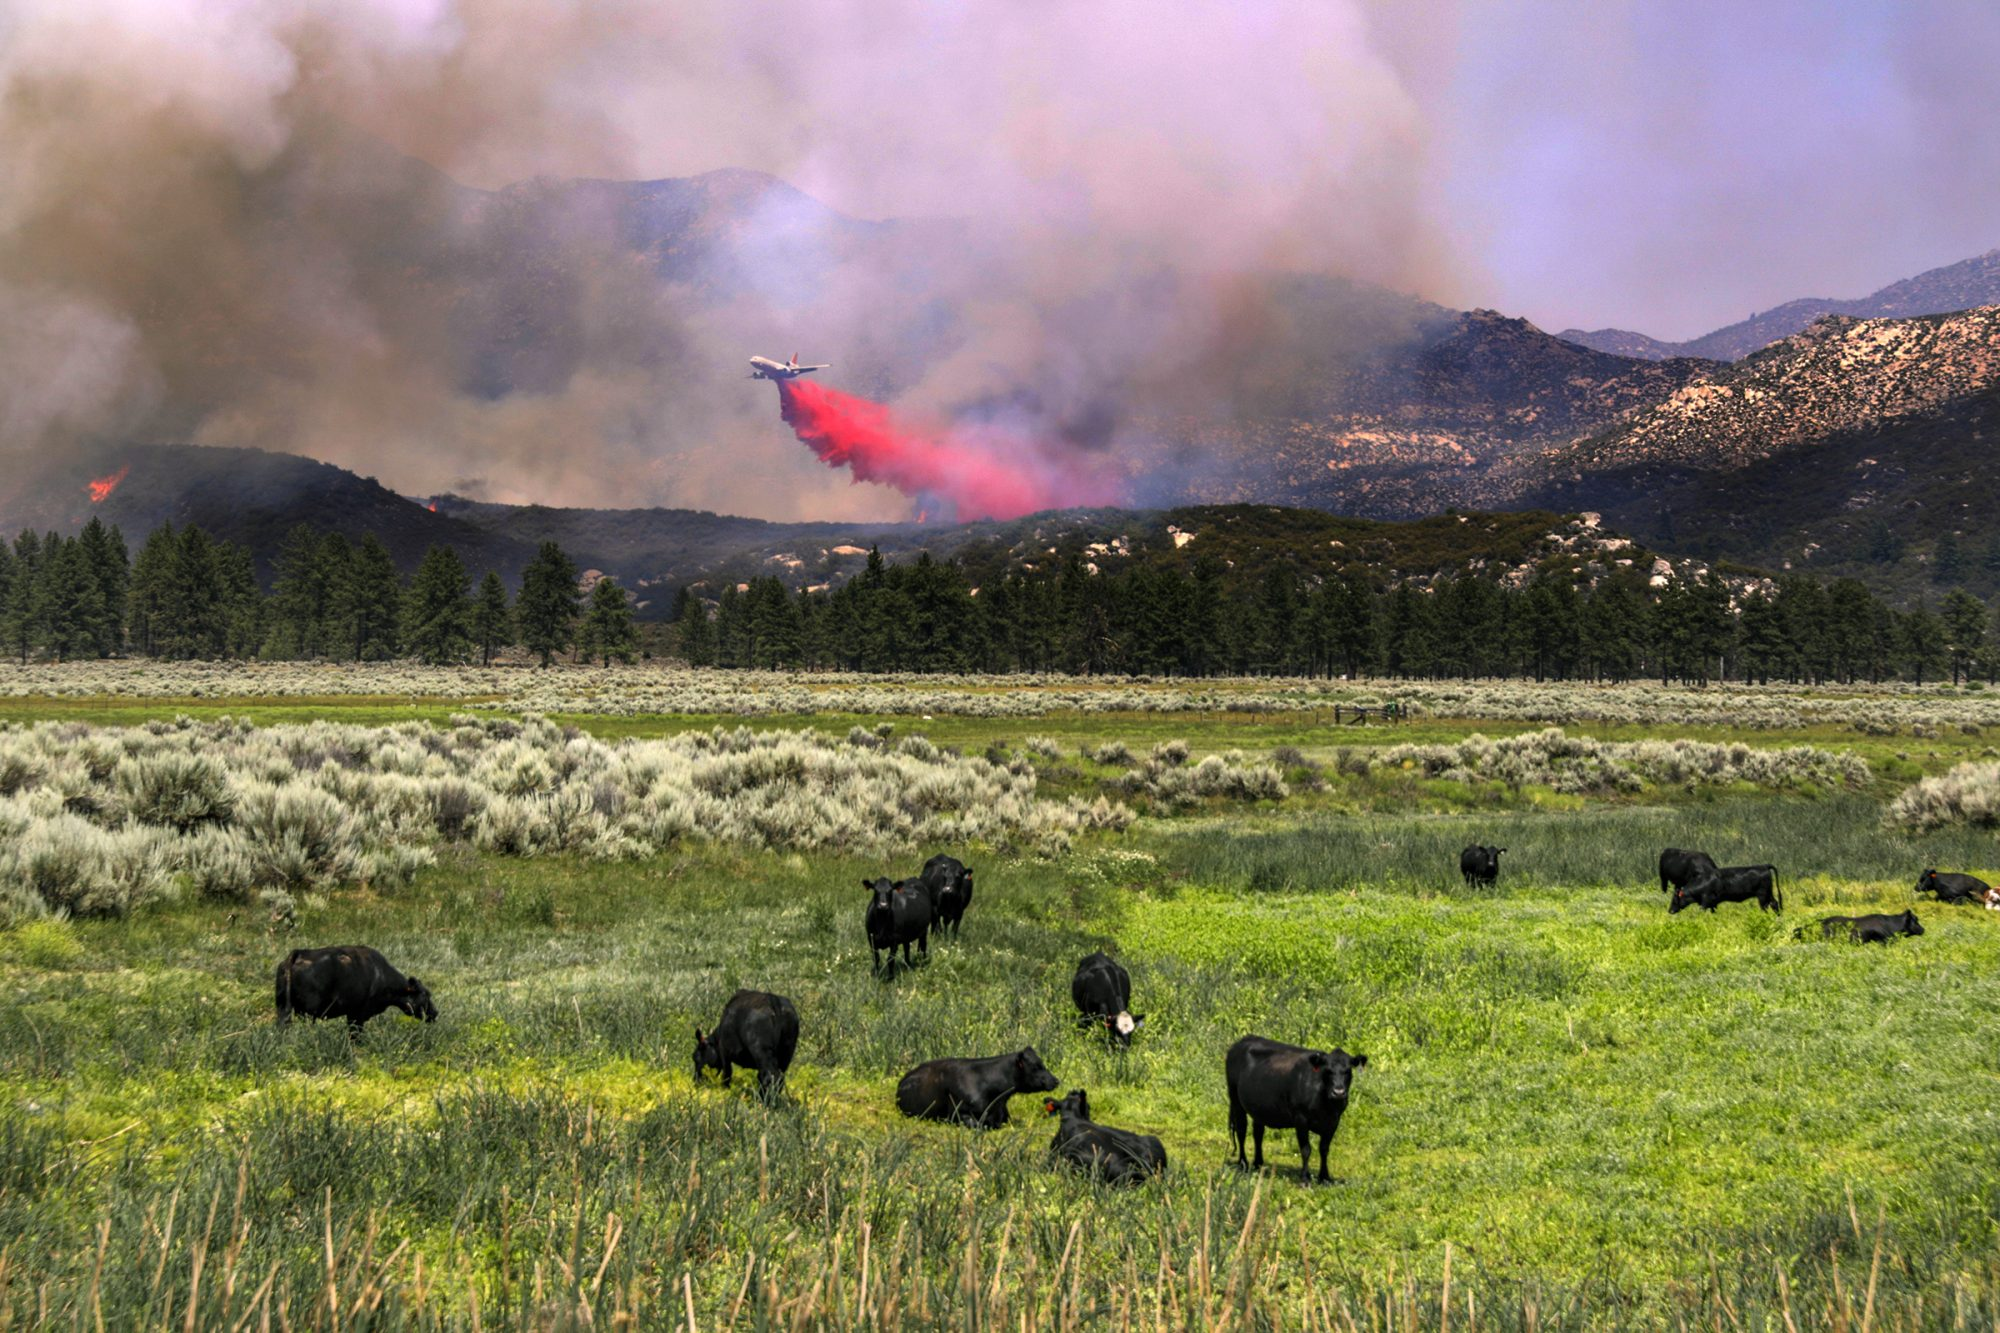 cows grazing in field as plane puts wildfire out